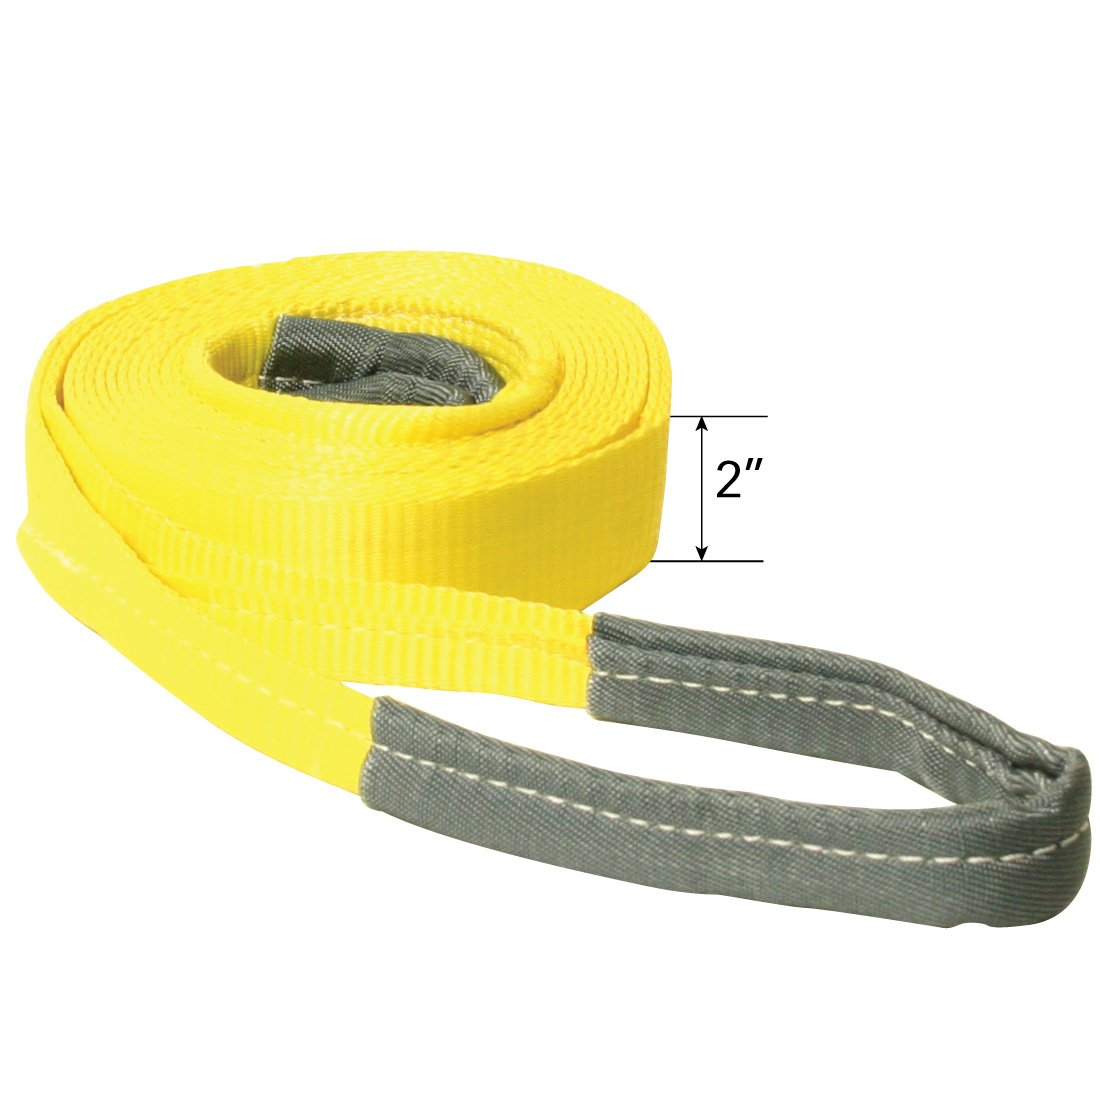 Vulcan Medium Duty Tow Strap With Reinforced Eyes (2'' x 20' Tow Strap - Towing Capacity Is 5,000 lbs.)